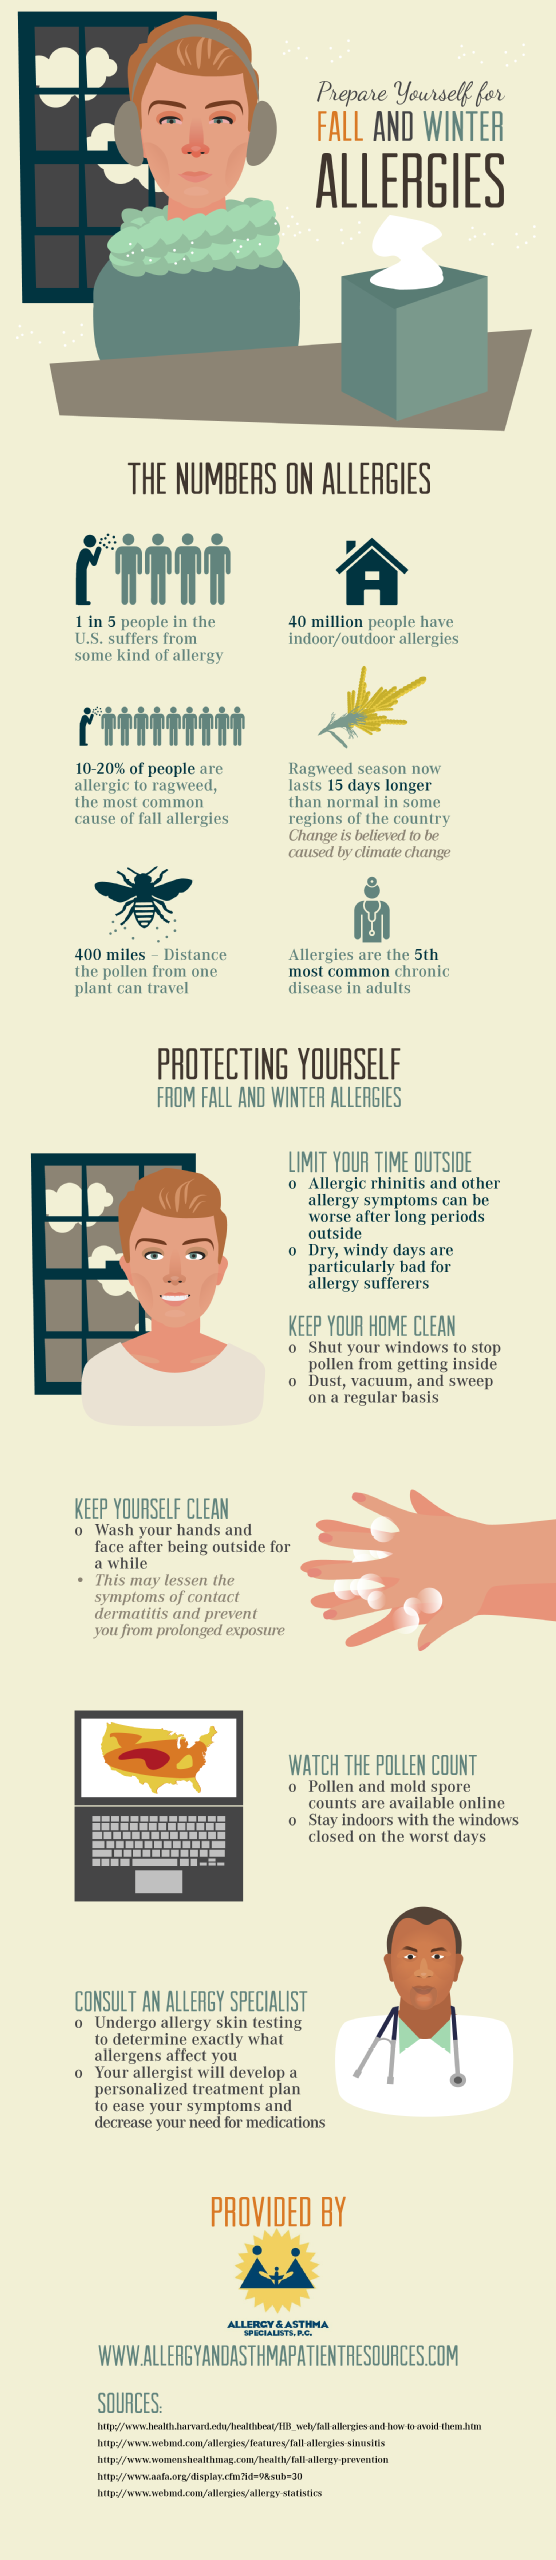 Prepare-Yourself-for-Fall-and-Winter-Allergies-Infographic[2]